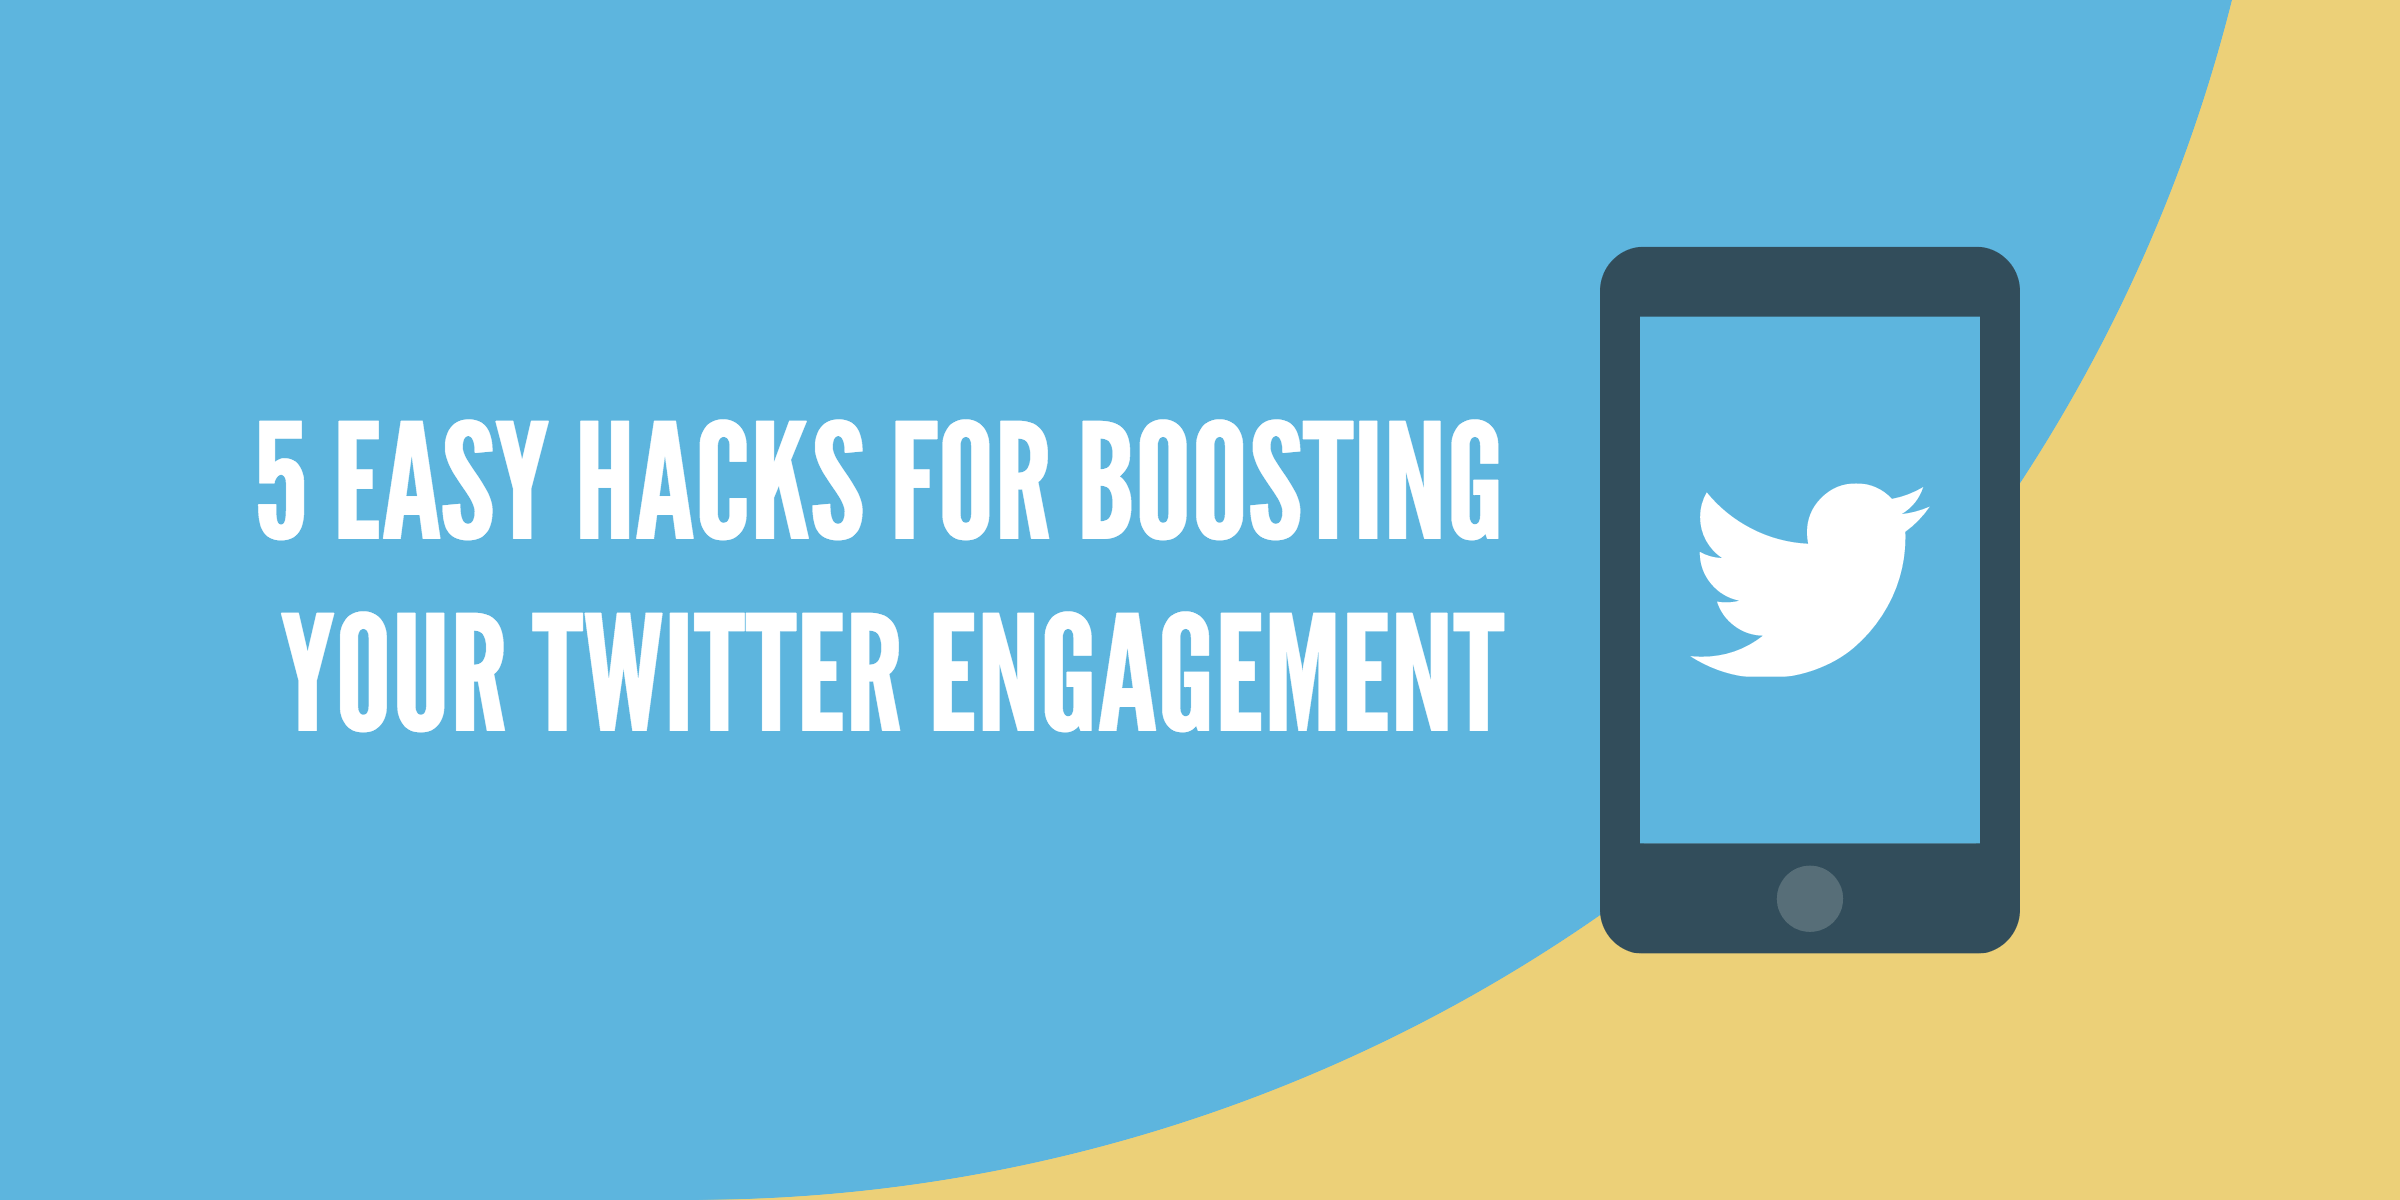 Boosting twitter engagement